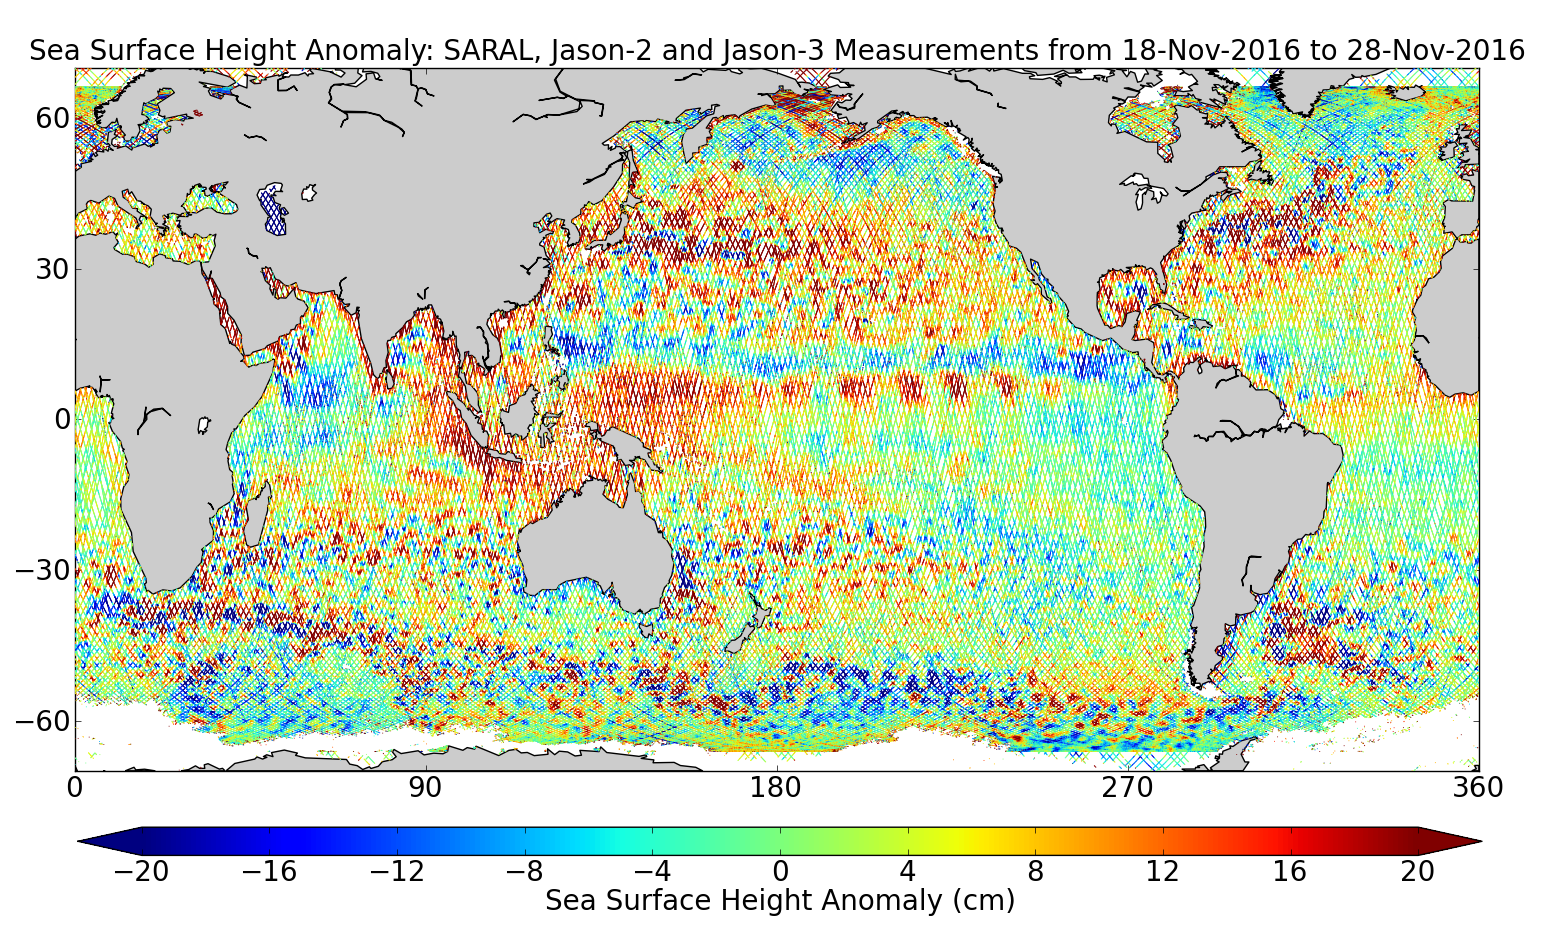 Sea Surface Height Anomaly: SARAL, Jason-2 and Jason-3 Measurements from 18-Nov-2016 to 28-Nov-2016